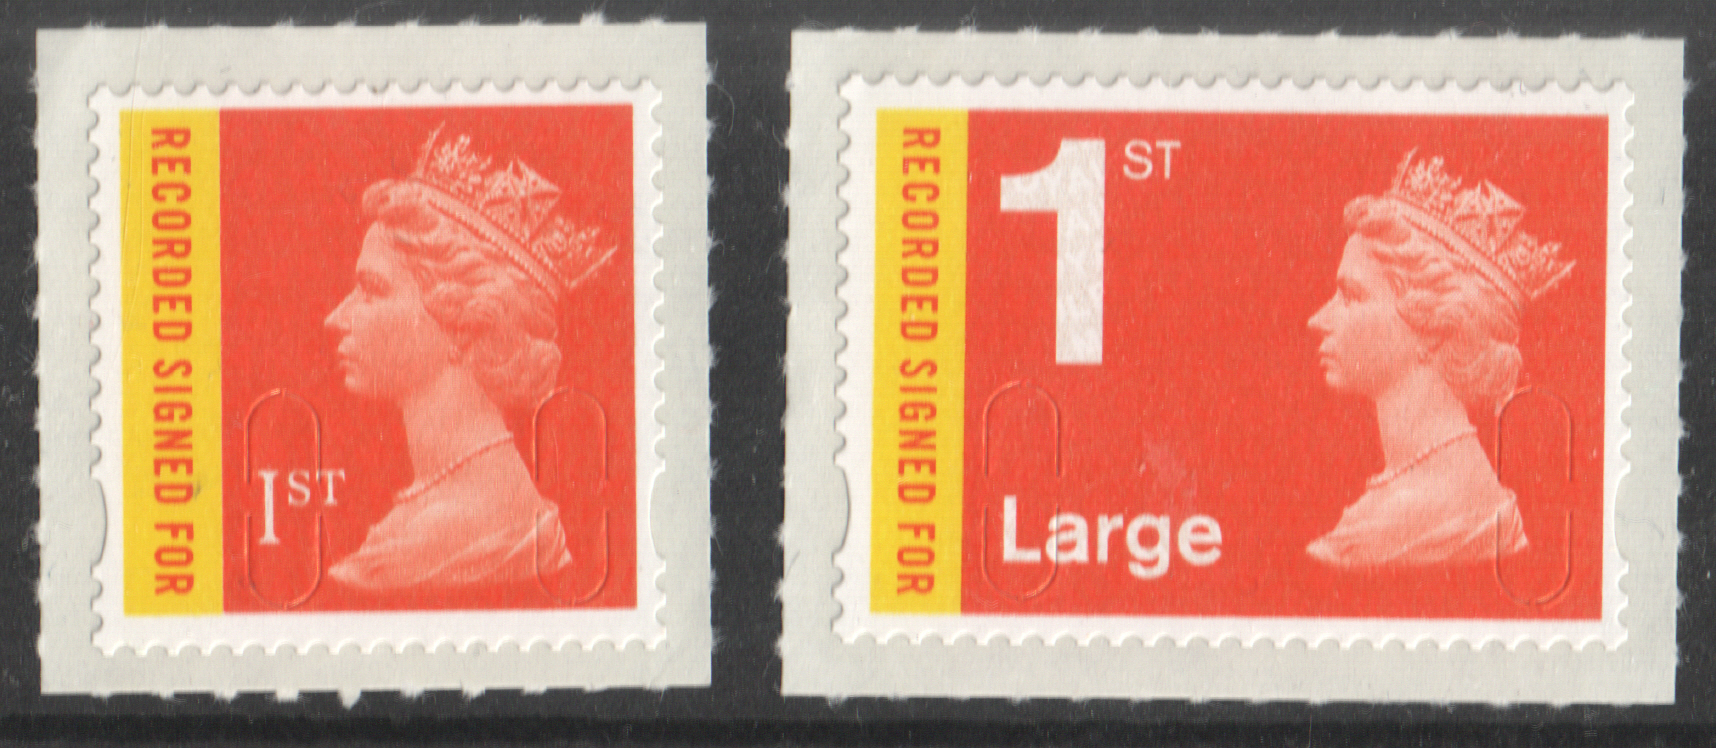 U3045 / 46 No Date Code 2009 1st & 1st Large Recorded Signed For Machins